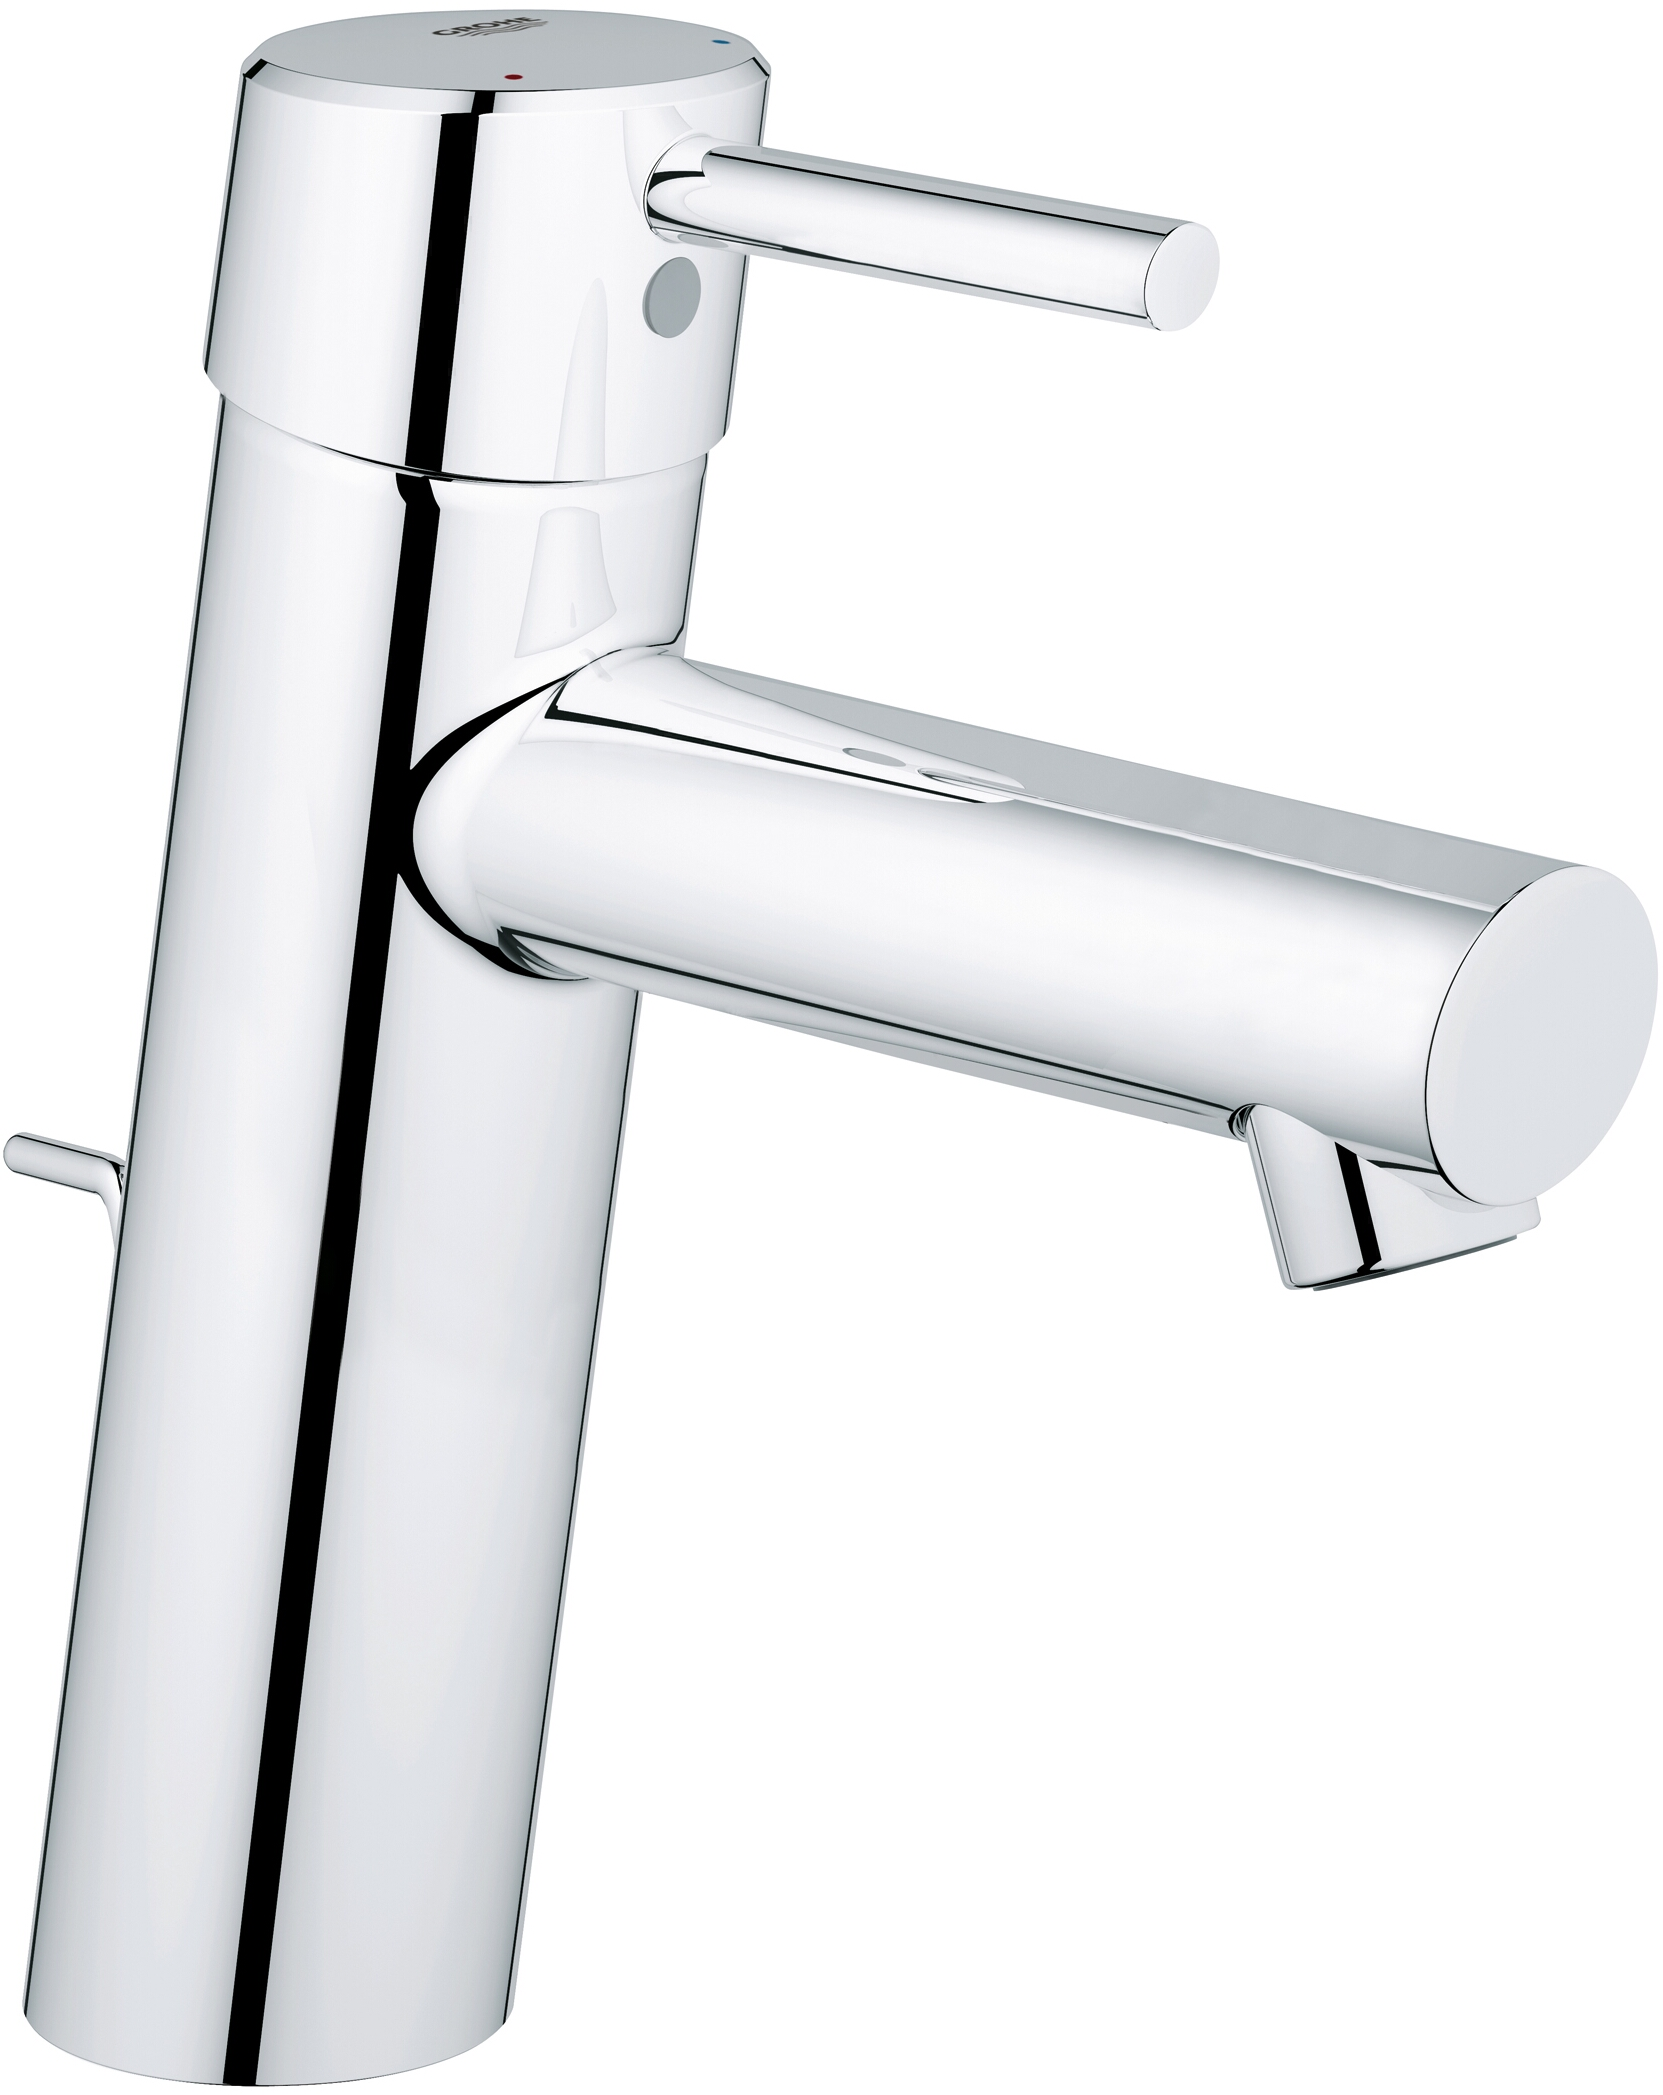 Grohe Concetto Faucet 23450001 Chrome Medium High With Grohe Concetto M Size